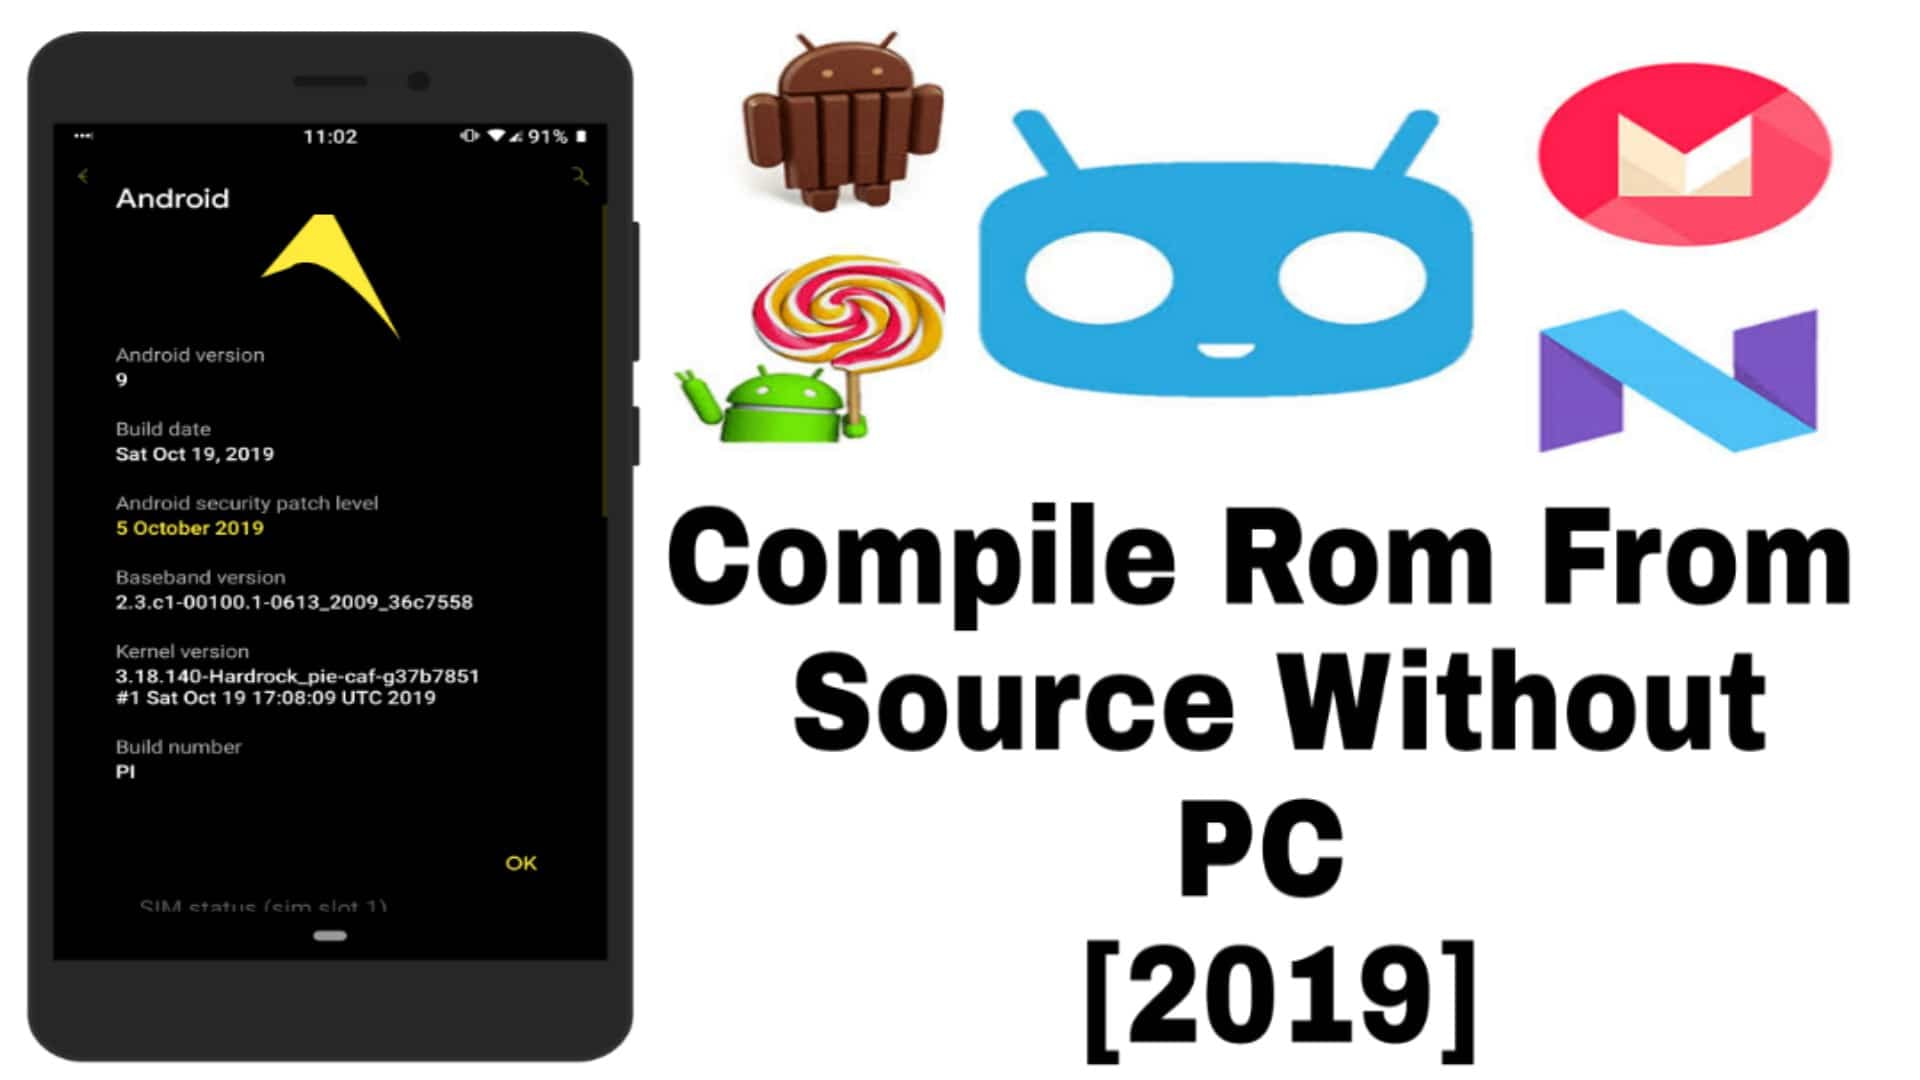 Compile Rom From Source Without PC